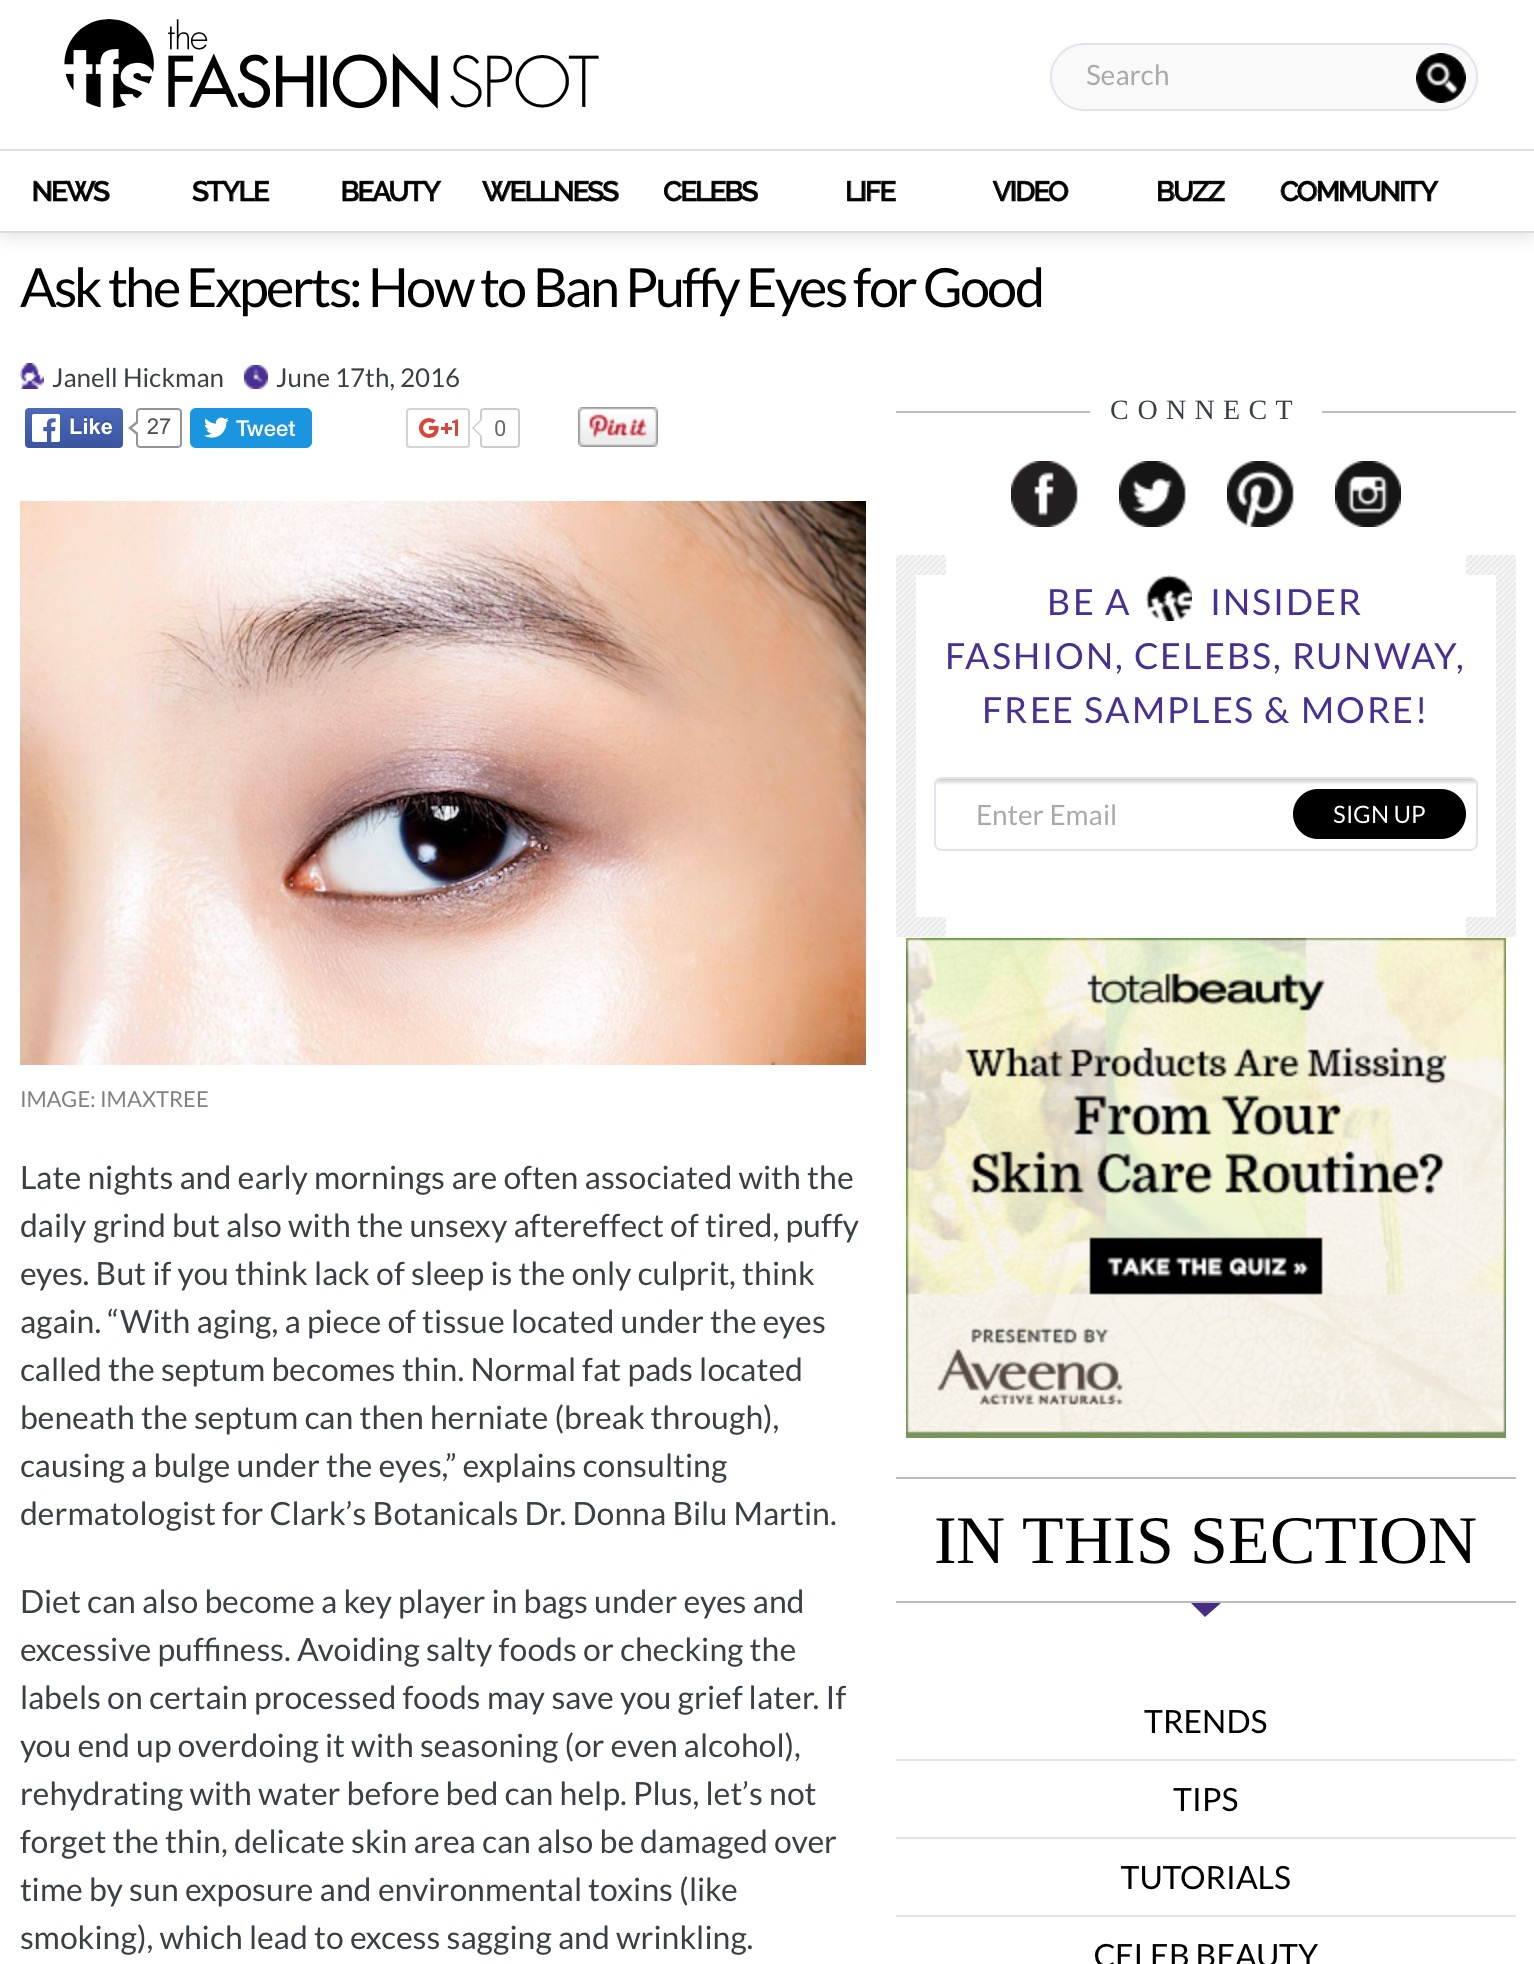 Donna Bilu Martin, MD weighs in on the causes and treatment of puffy eyes on thefashionspot.com